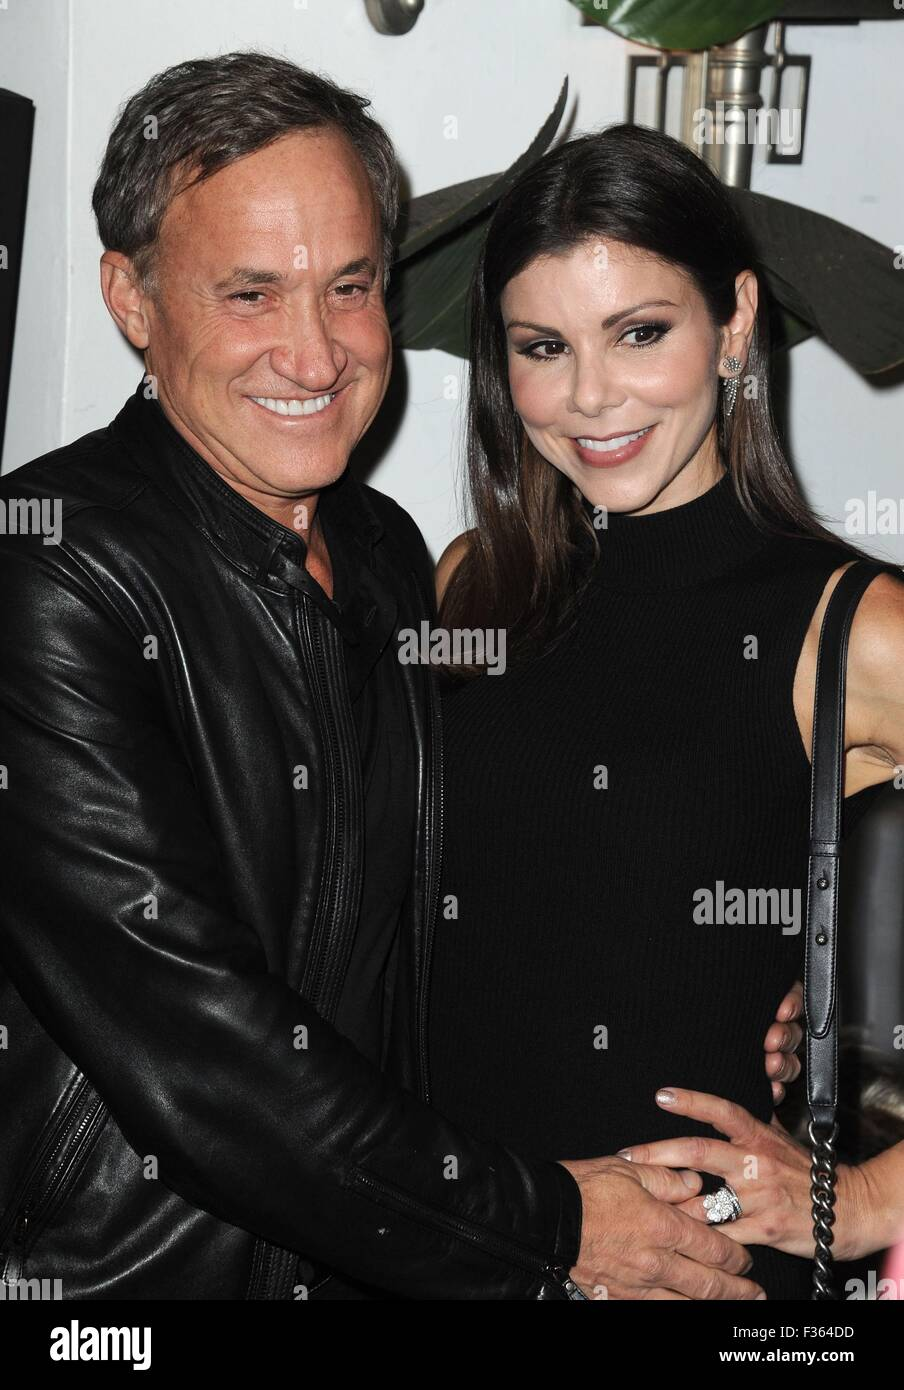 Dr dubrow beverly hills